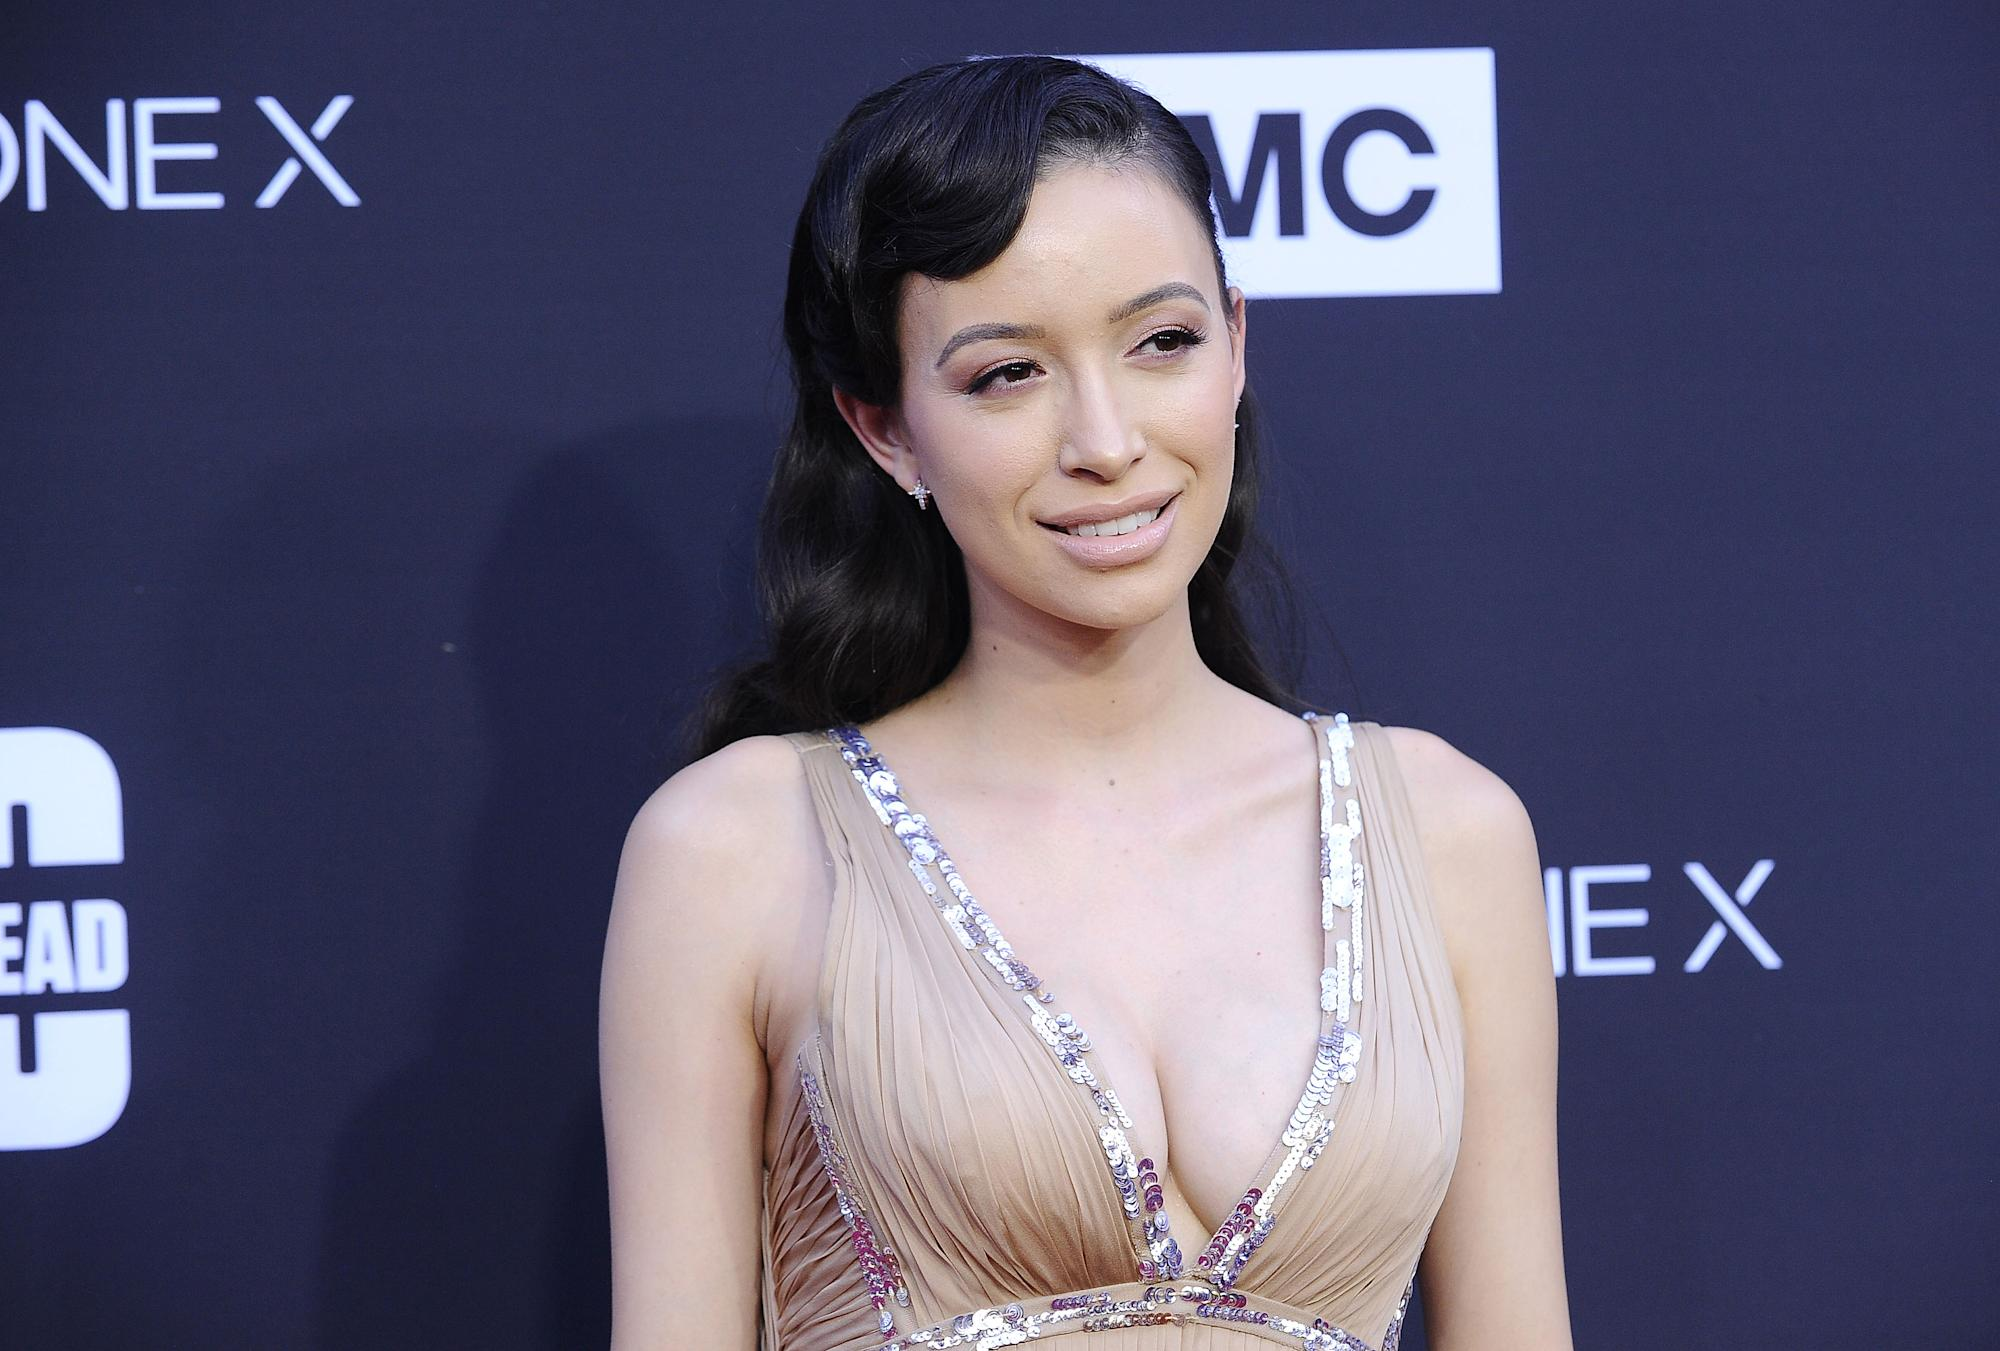 'Selena': The Series' star Christian Serratos on playing the iconic Tejano music star and admiring J. Lo: 'Selena's shoes were big, Jennifer's shoes were big'